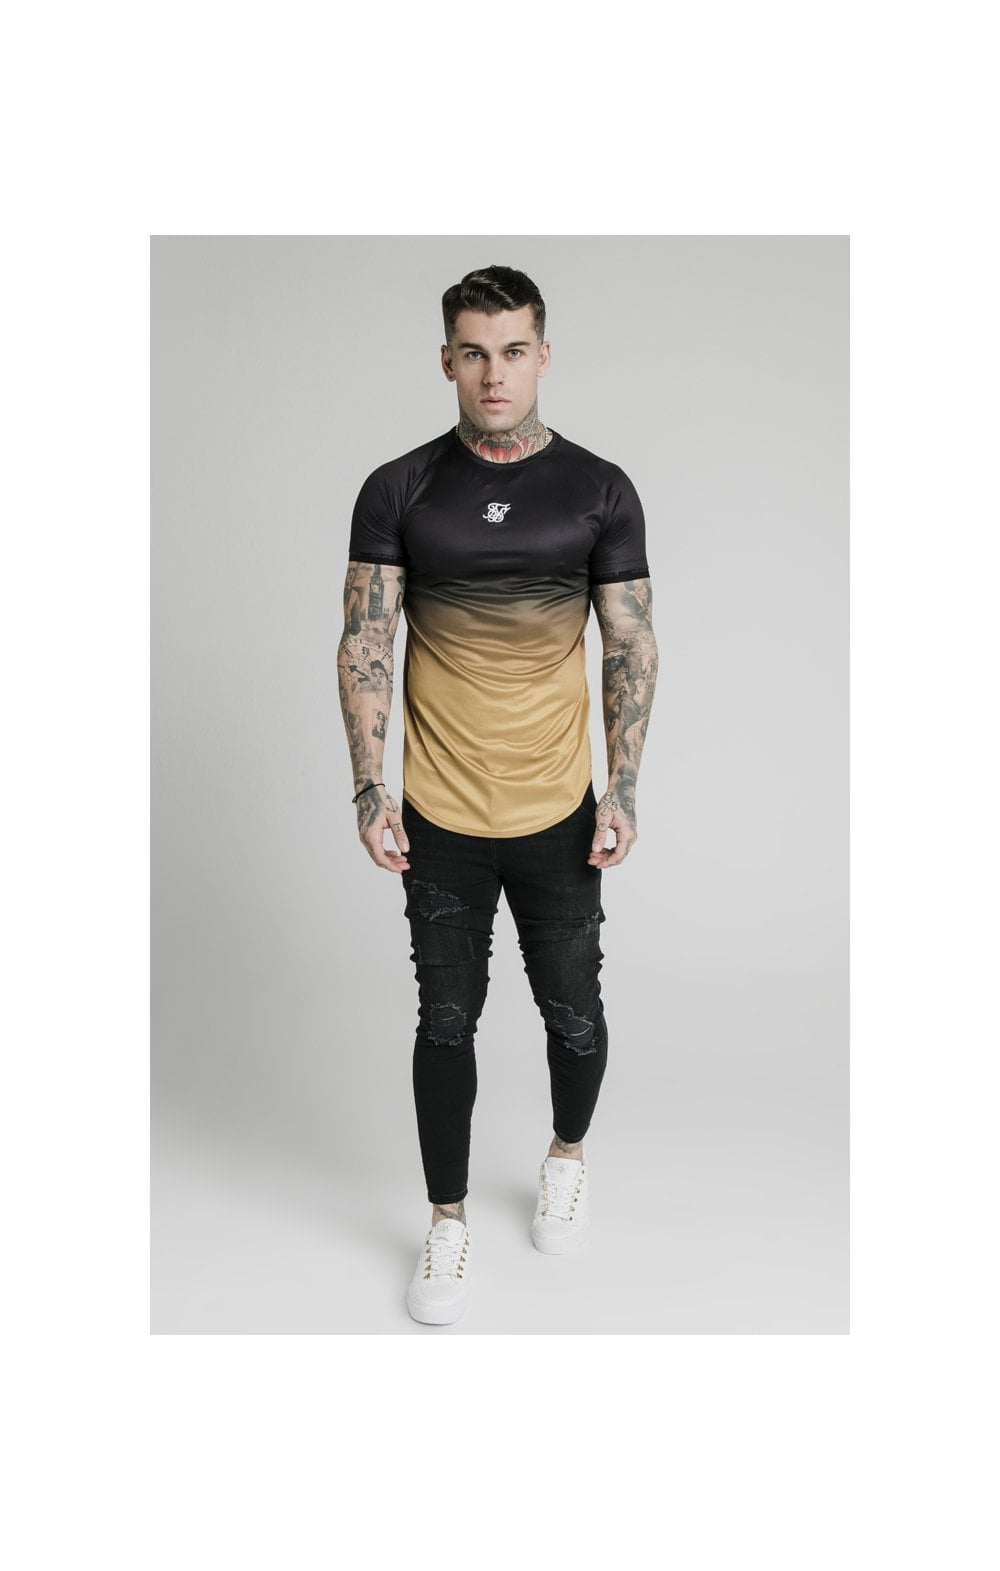 SikSilk S/S  Fade Tech Tee - Black & Gold (2)